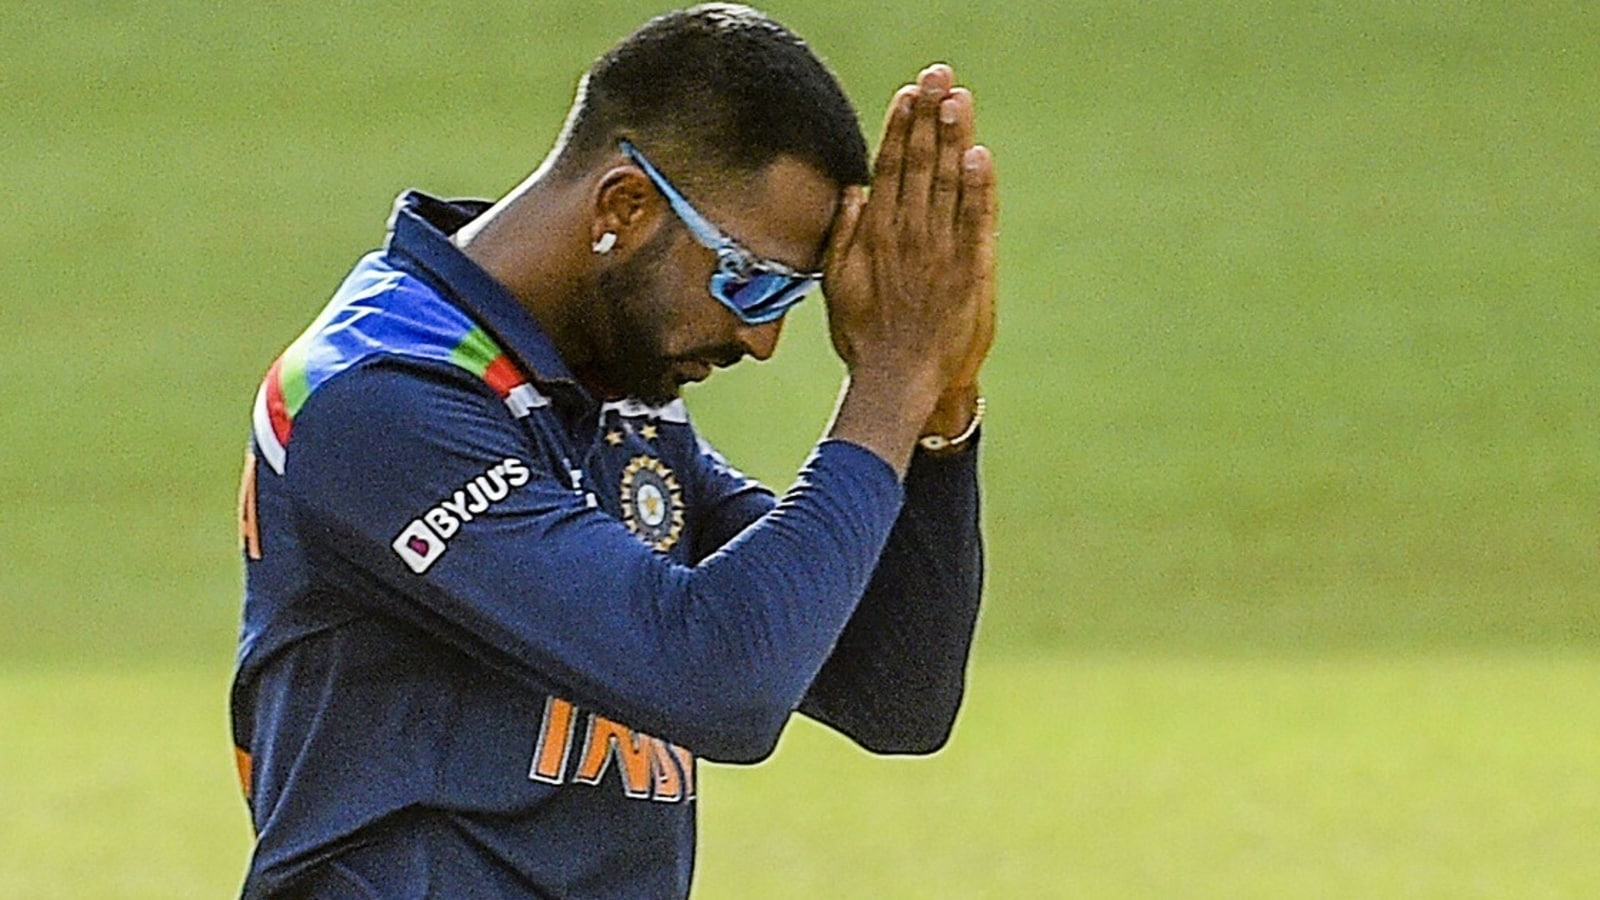 IND v/s SRL 2nd T20I: After found krunal pandya COVID test positive, match is posponed by a day